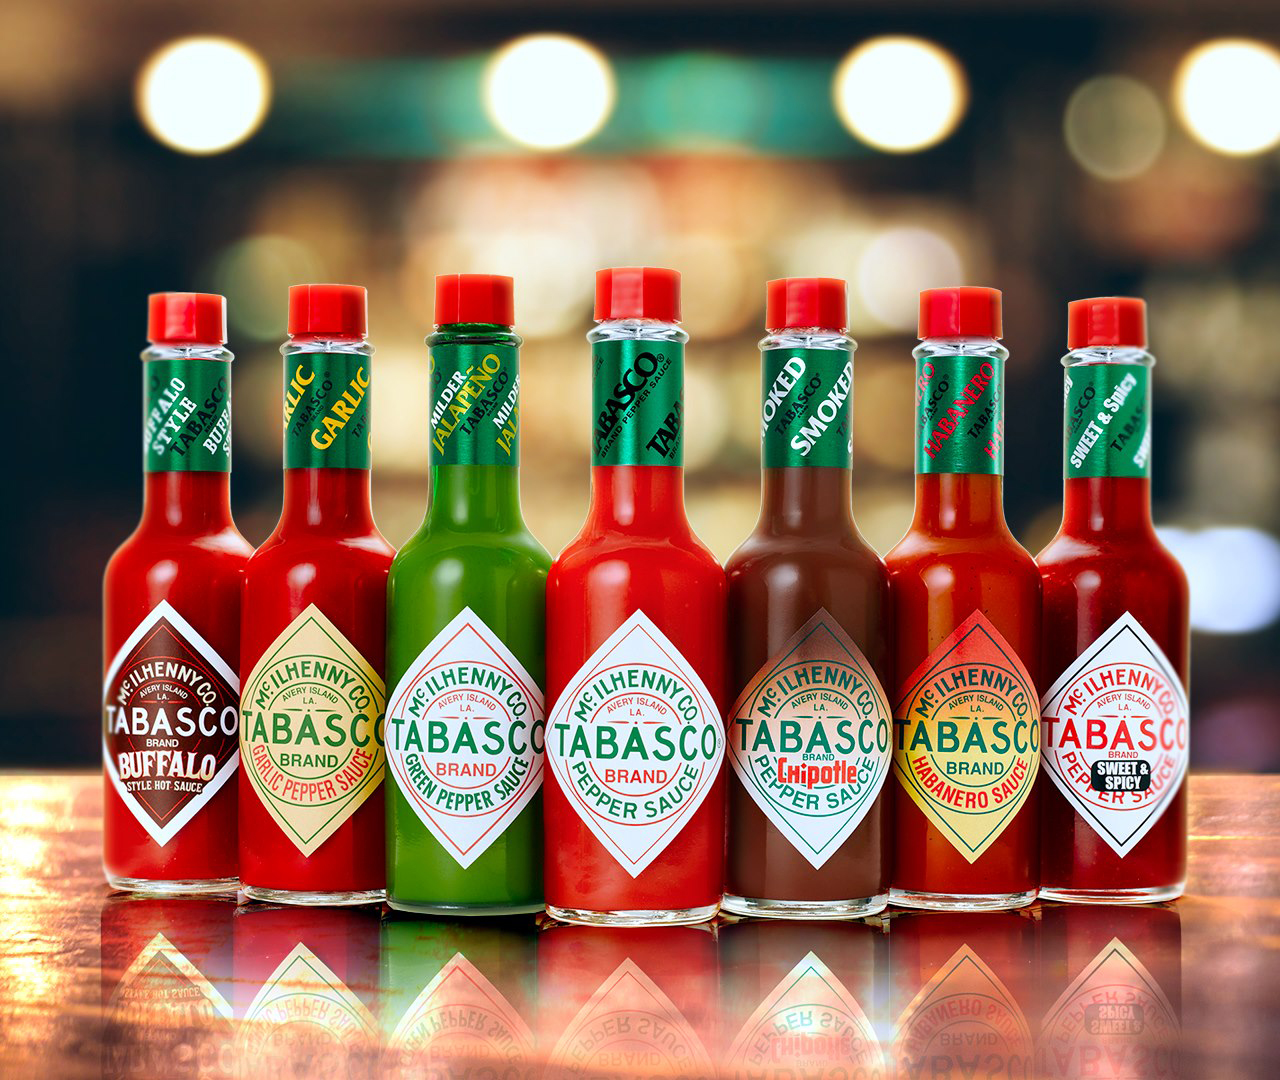 11 Things You Didn't Know About Tabasco, the World's Most Famous Hot Sauce